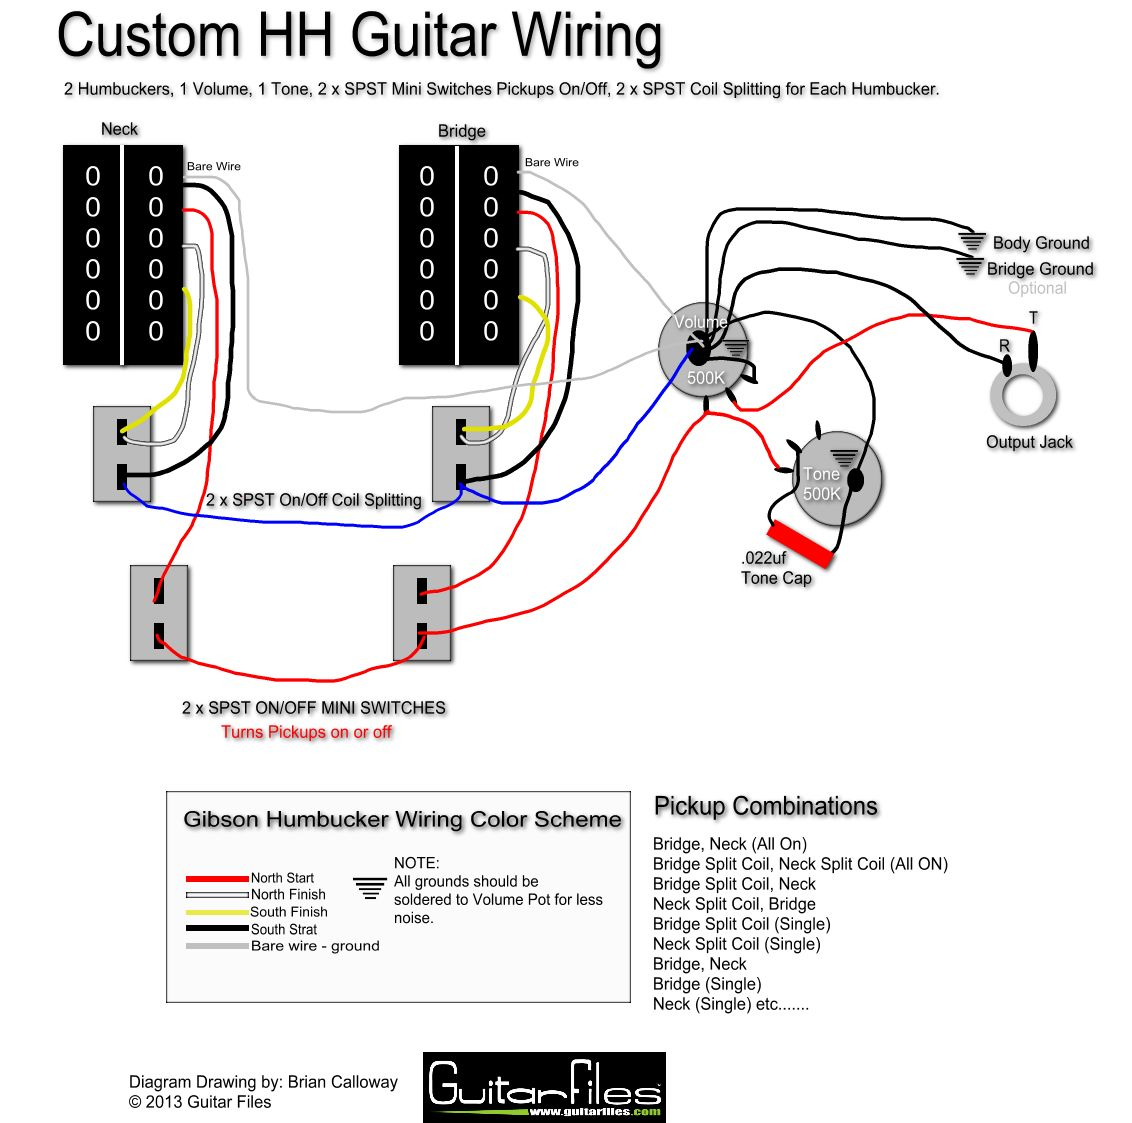 Hh Guitar Wiring Schematics List Of Schematic Circuit Diagram Fs 400 130520062 Custom With Spst Coil Splitting And Switching Rh Pinterest Com